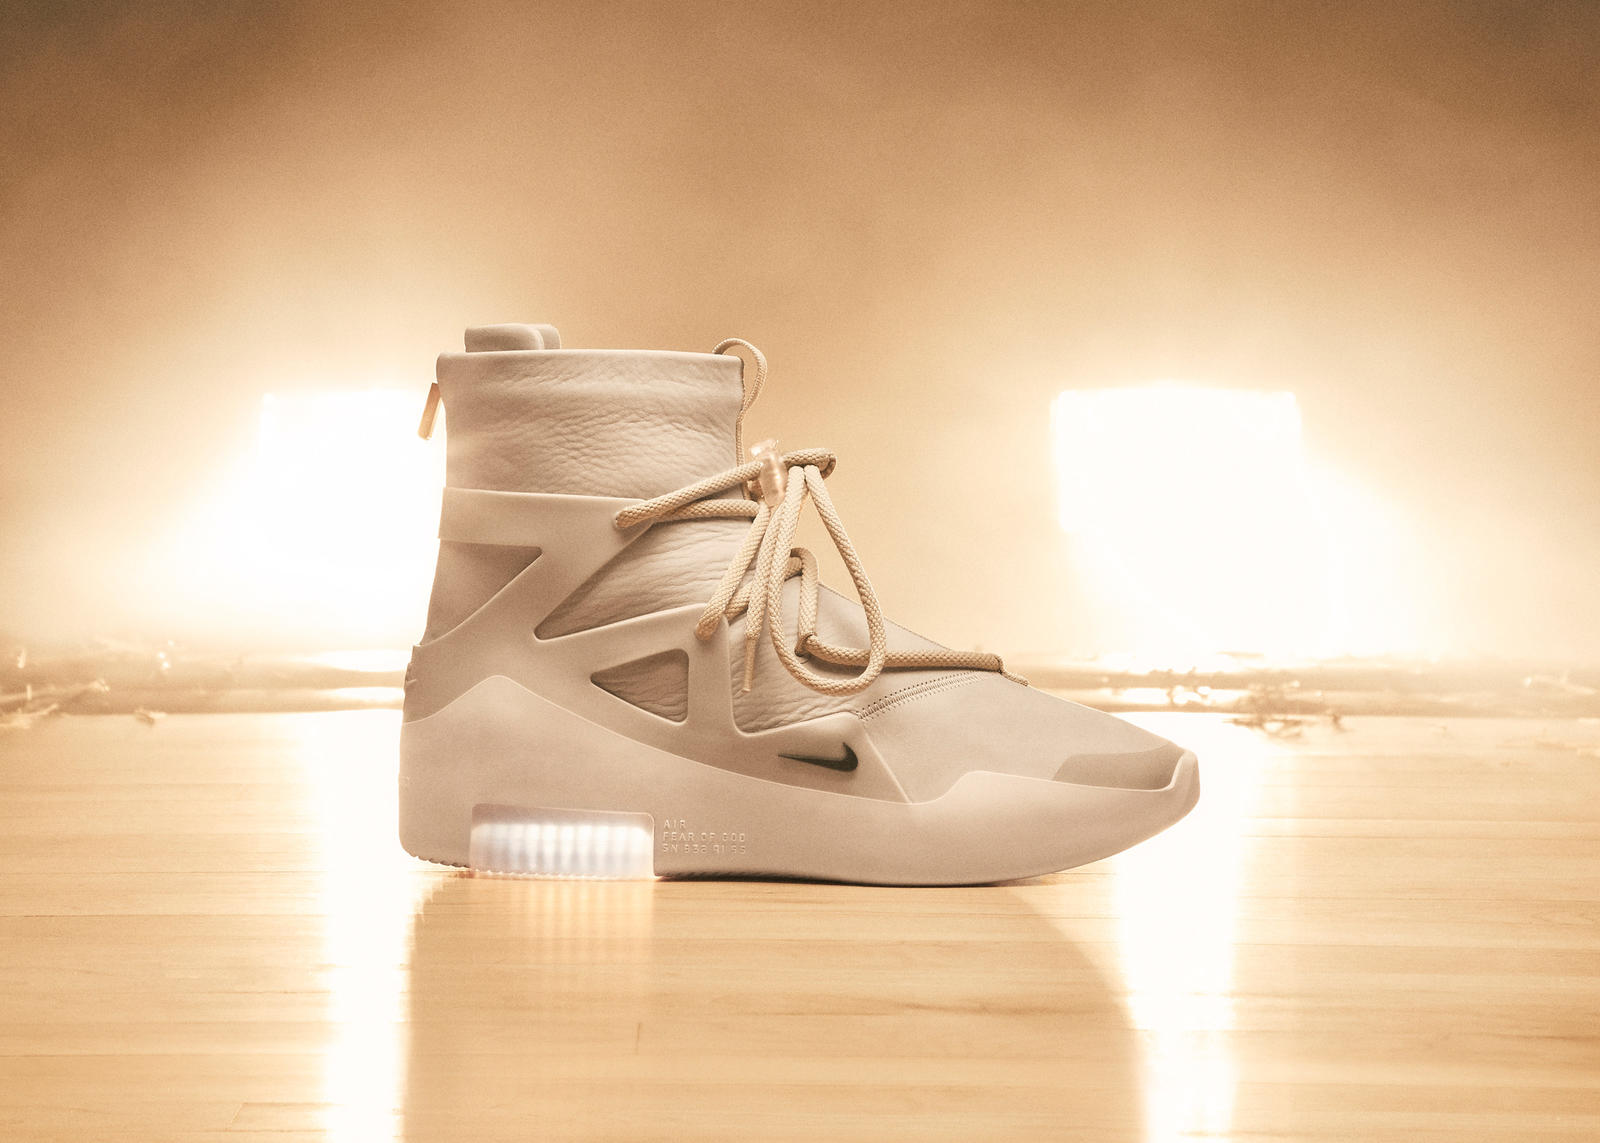 Nike x Fear of God 12